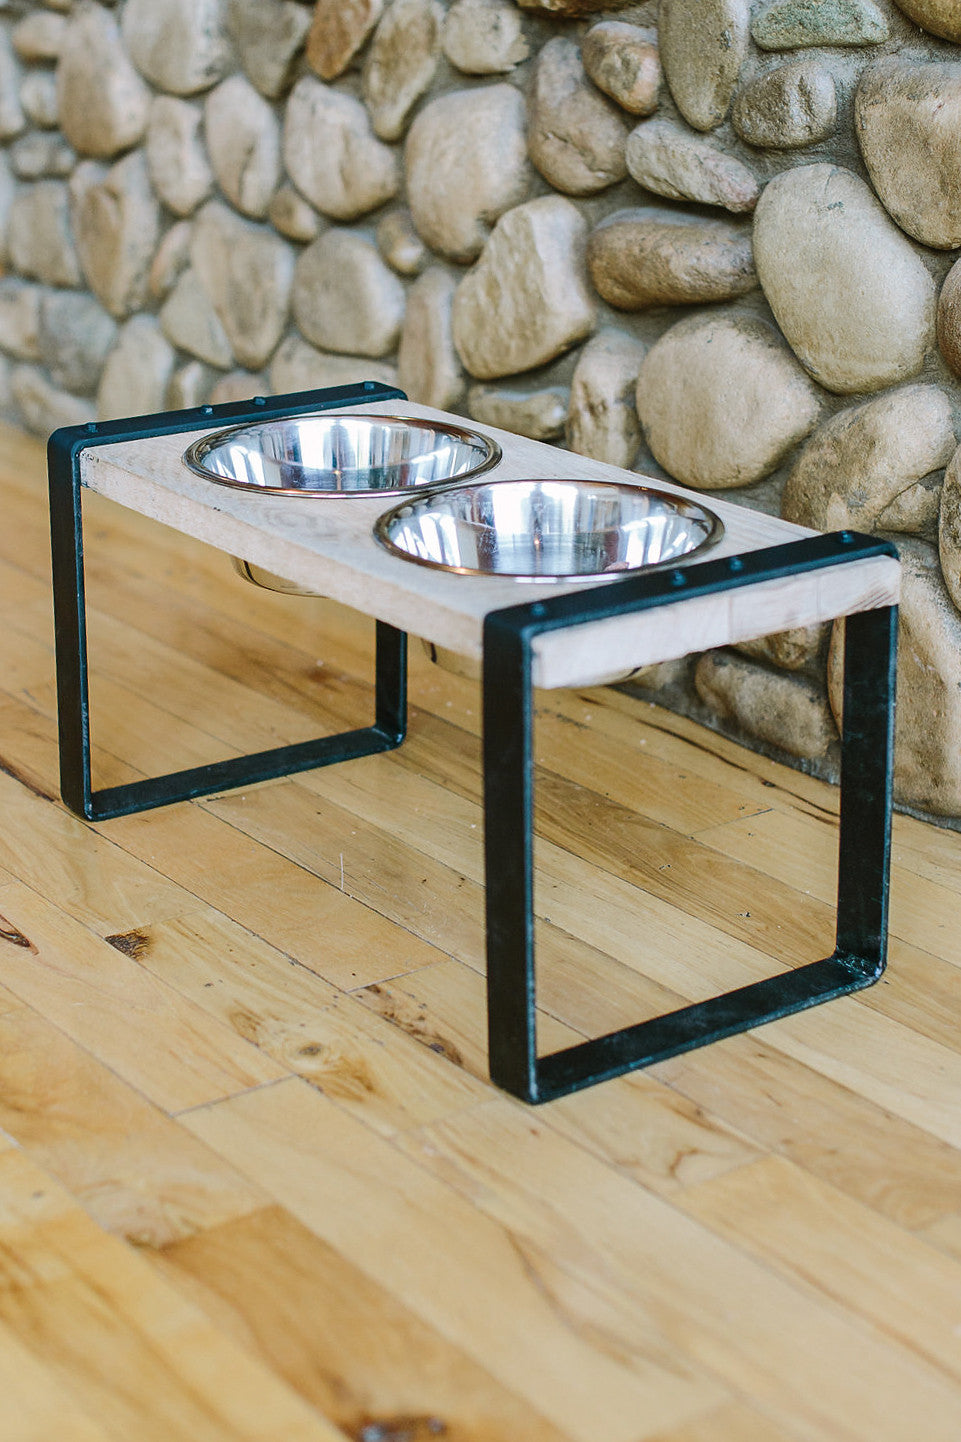 Rustic Elevated Dog Feeder Stand Double Wild Hound